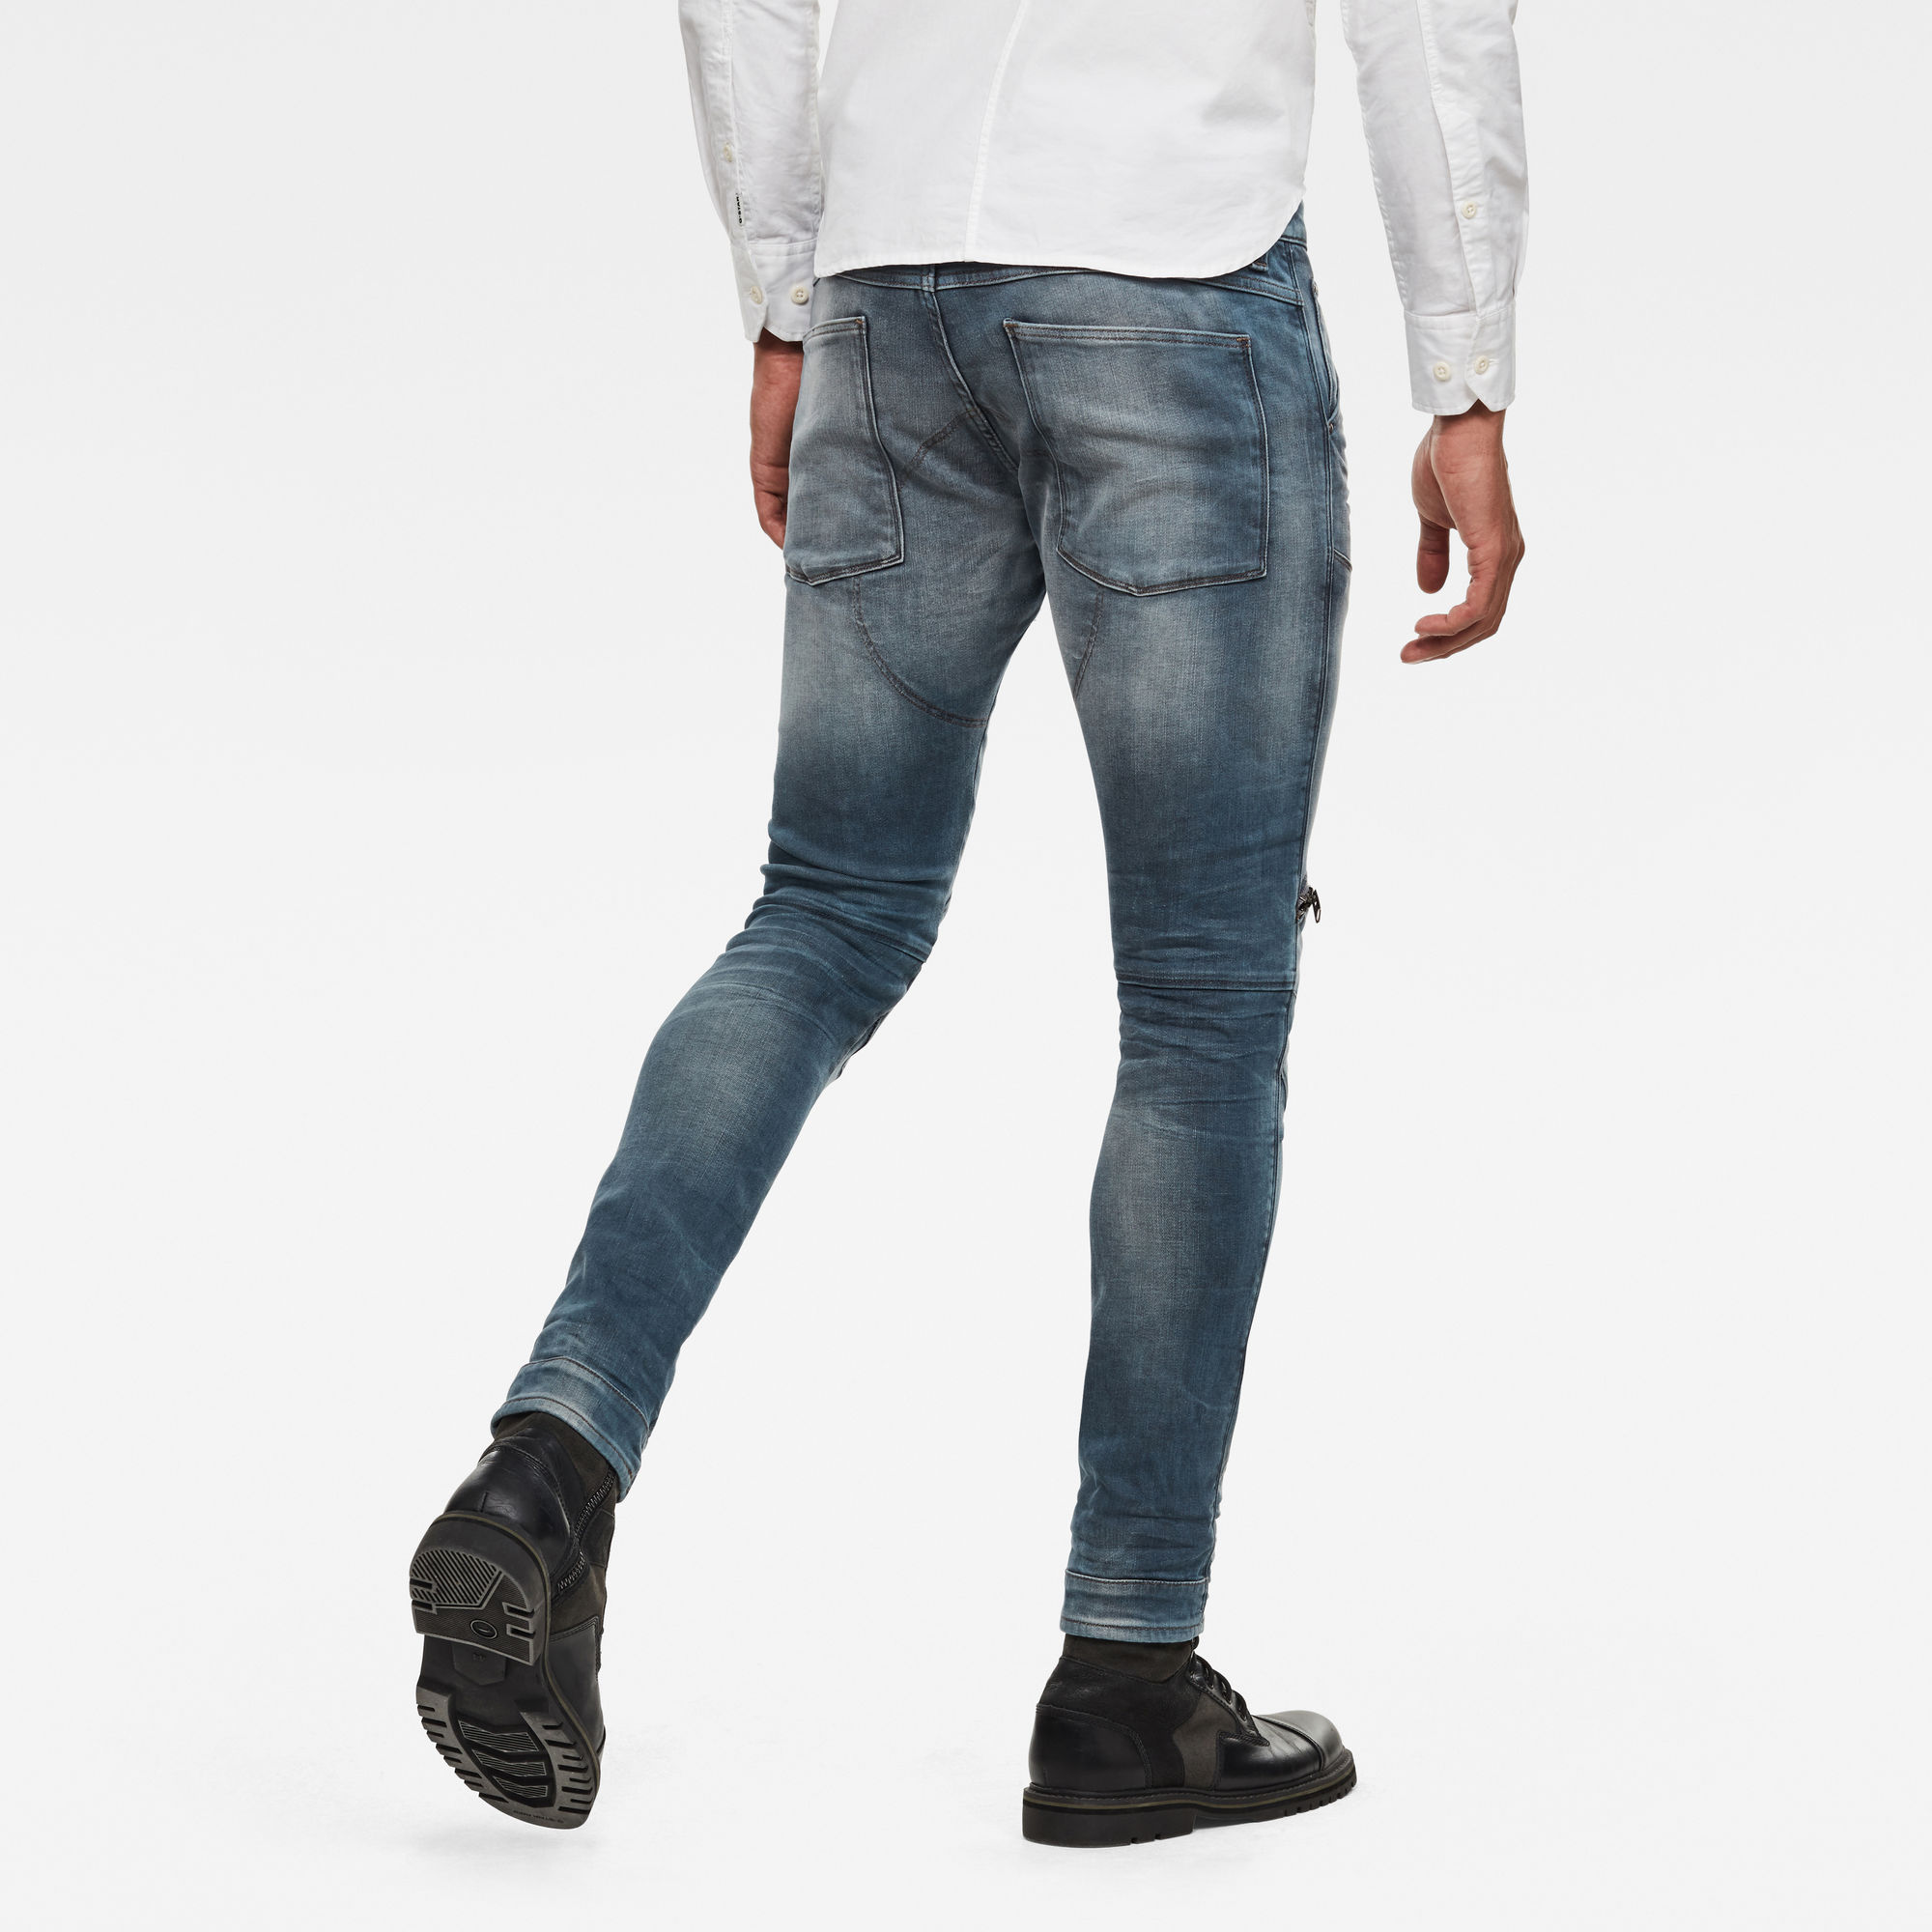 G-Star RAW 5620 3D Zip Knee Skinny Jeans